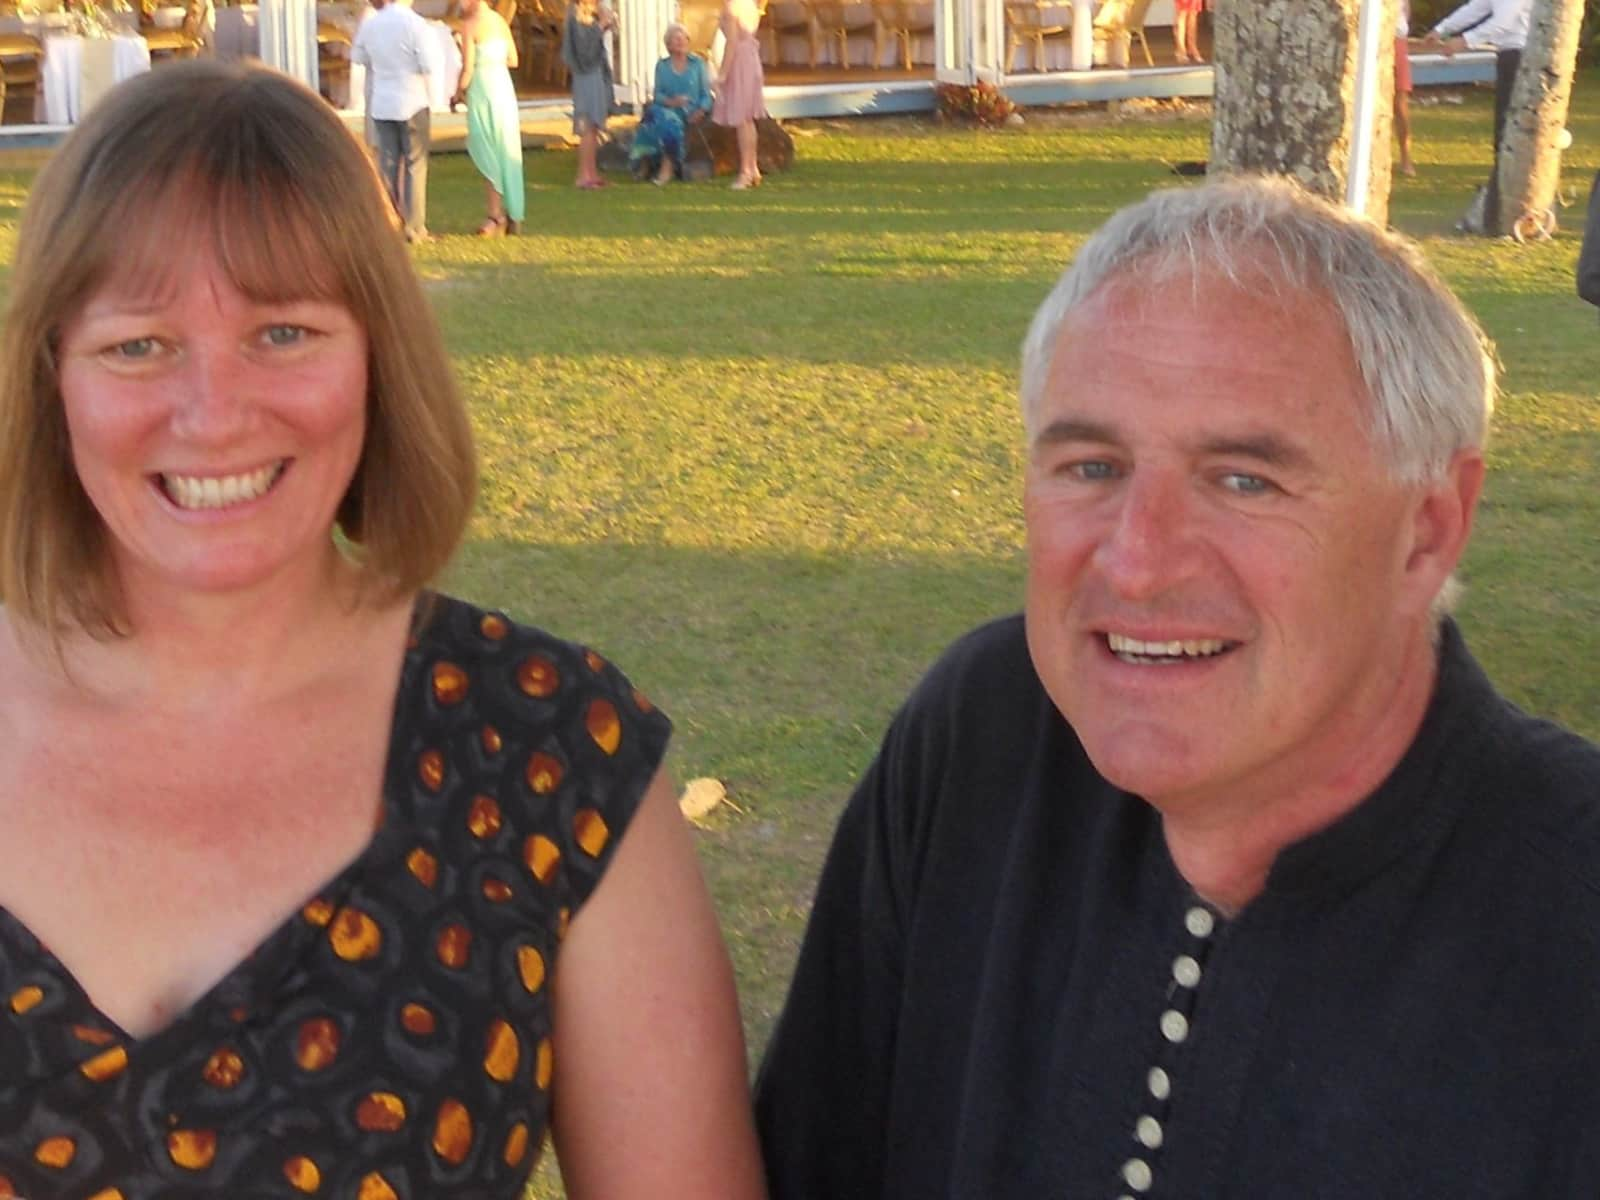 Tracey & Dave from Whangarei, New Zealand